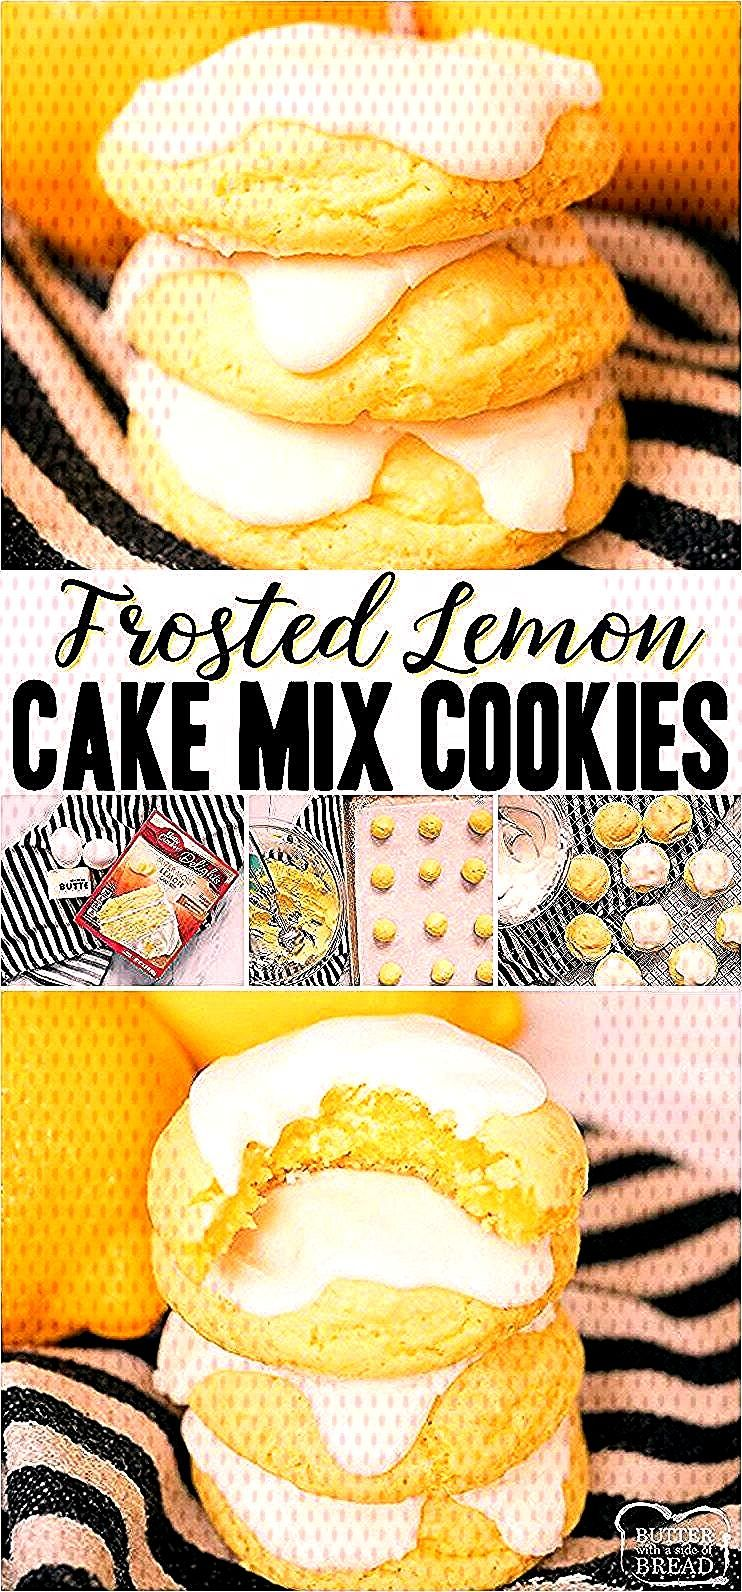 Lemon Cake Mix Cookies are soft amp delicious lemon cookies made using a Lemon Cake Mix, butter and e